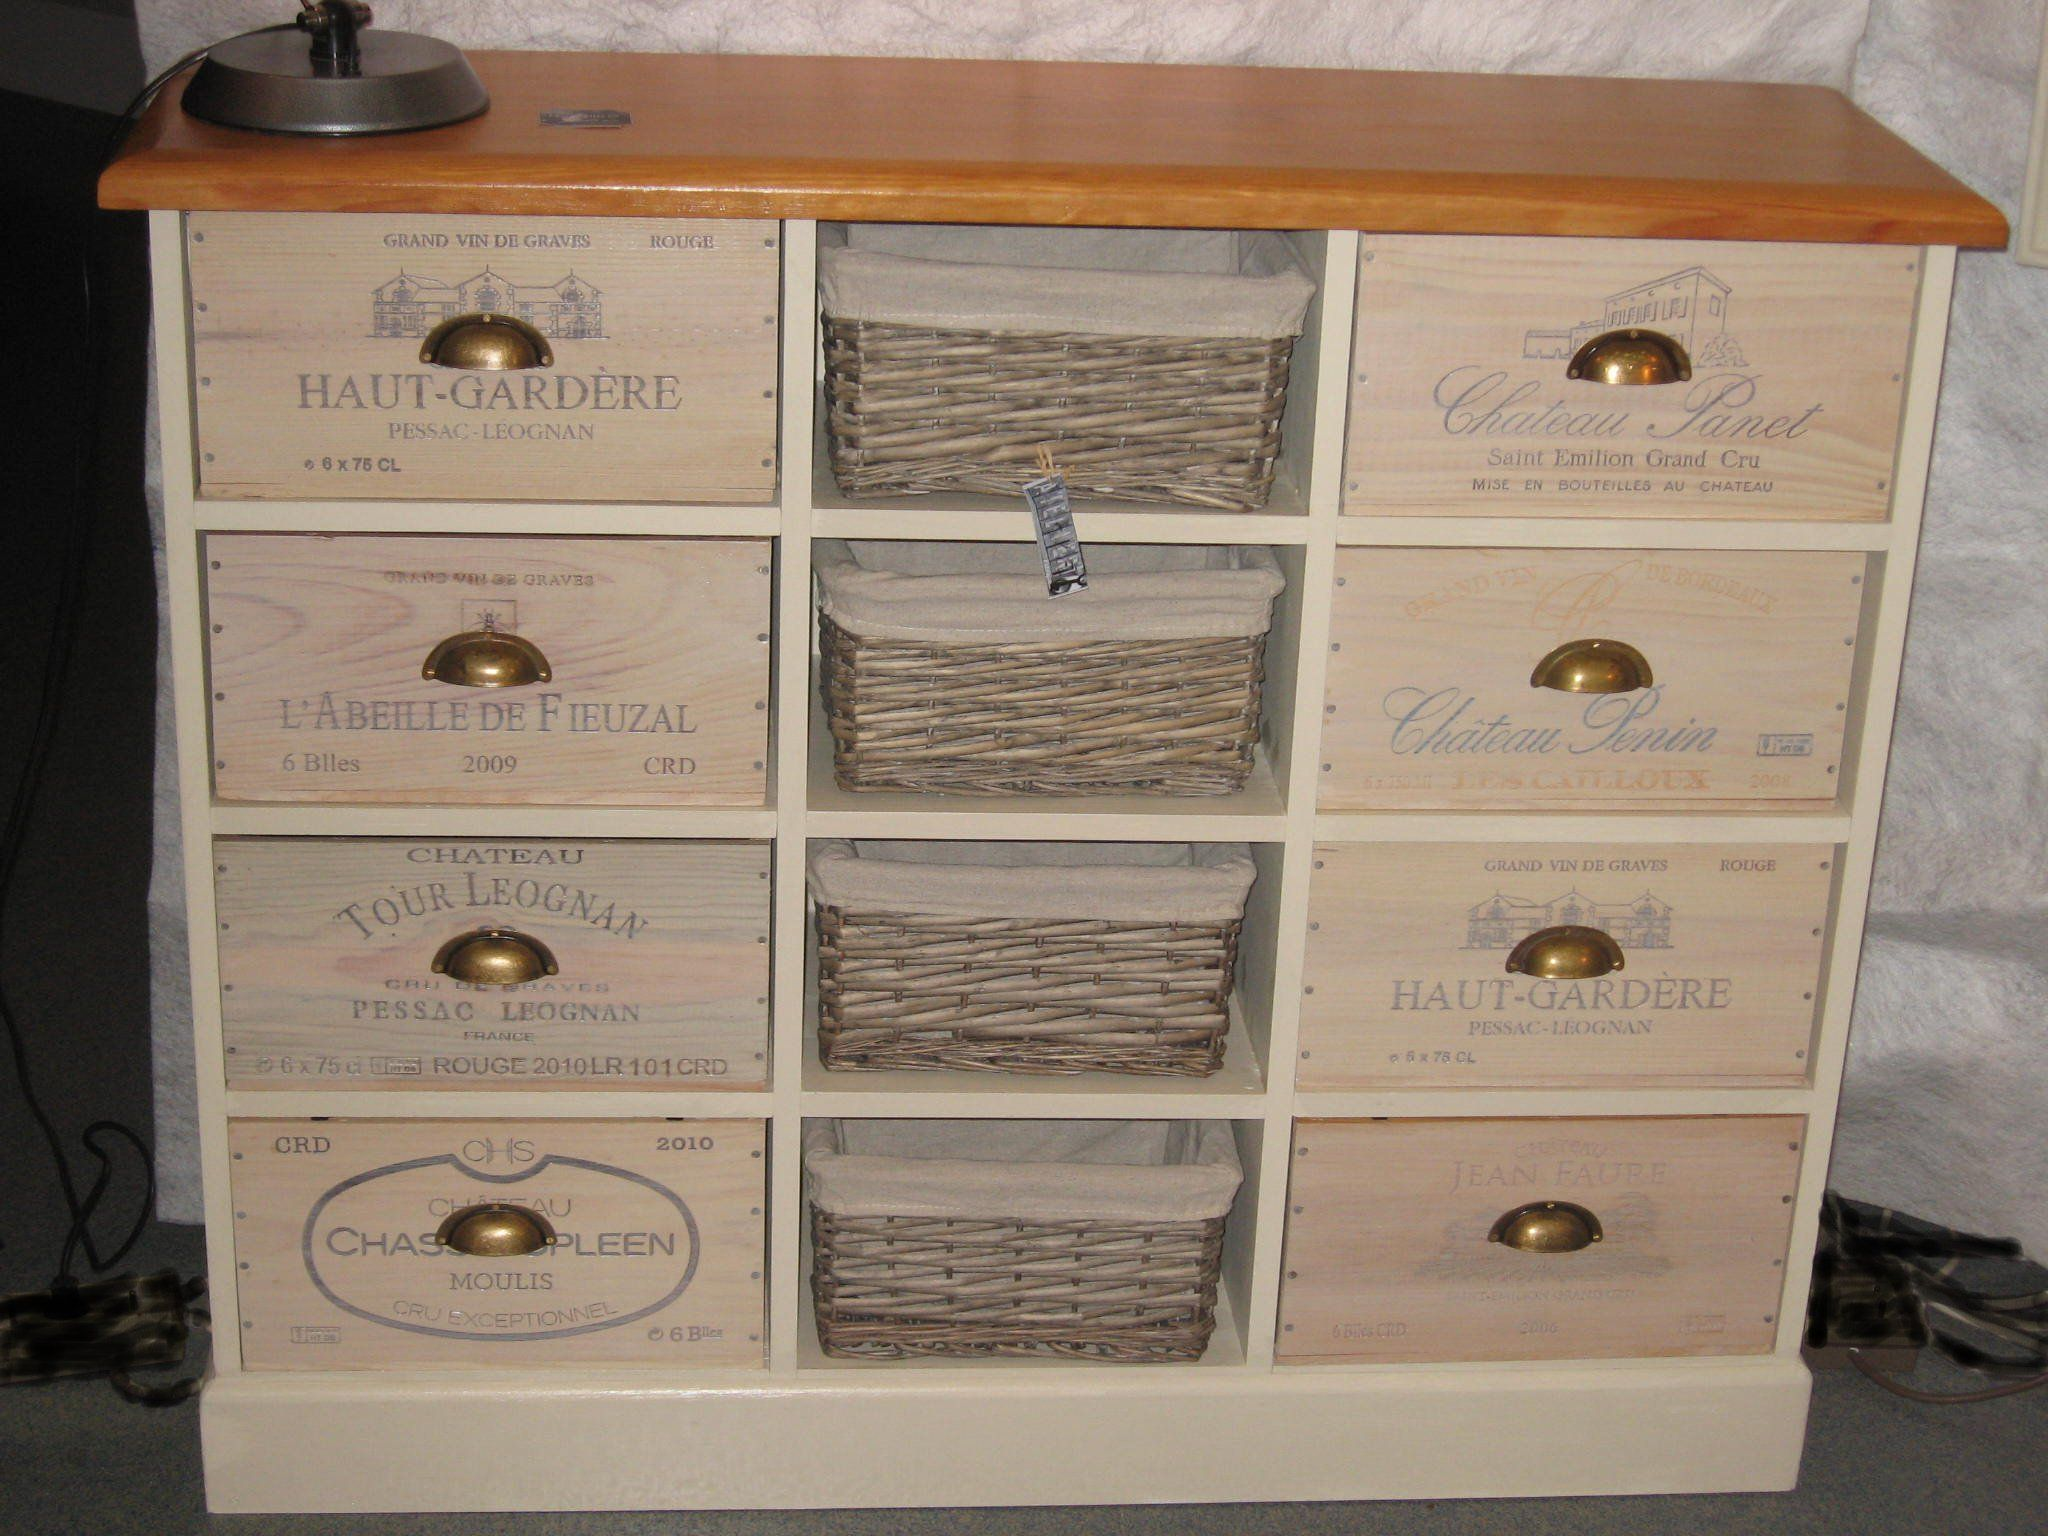 Chiffonier en caisses de vin recycl es meubles d co for Meuble caisse vin